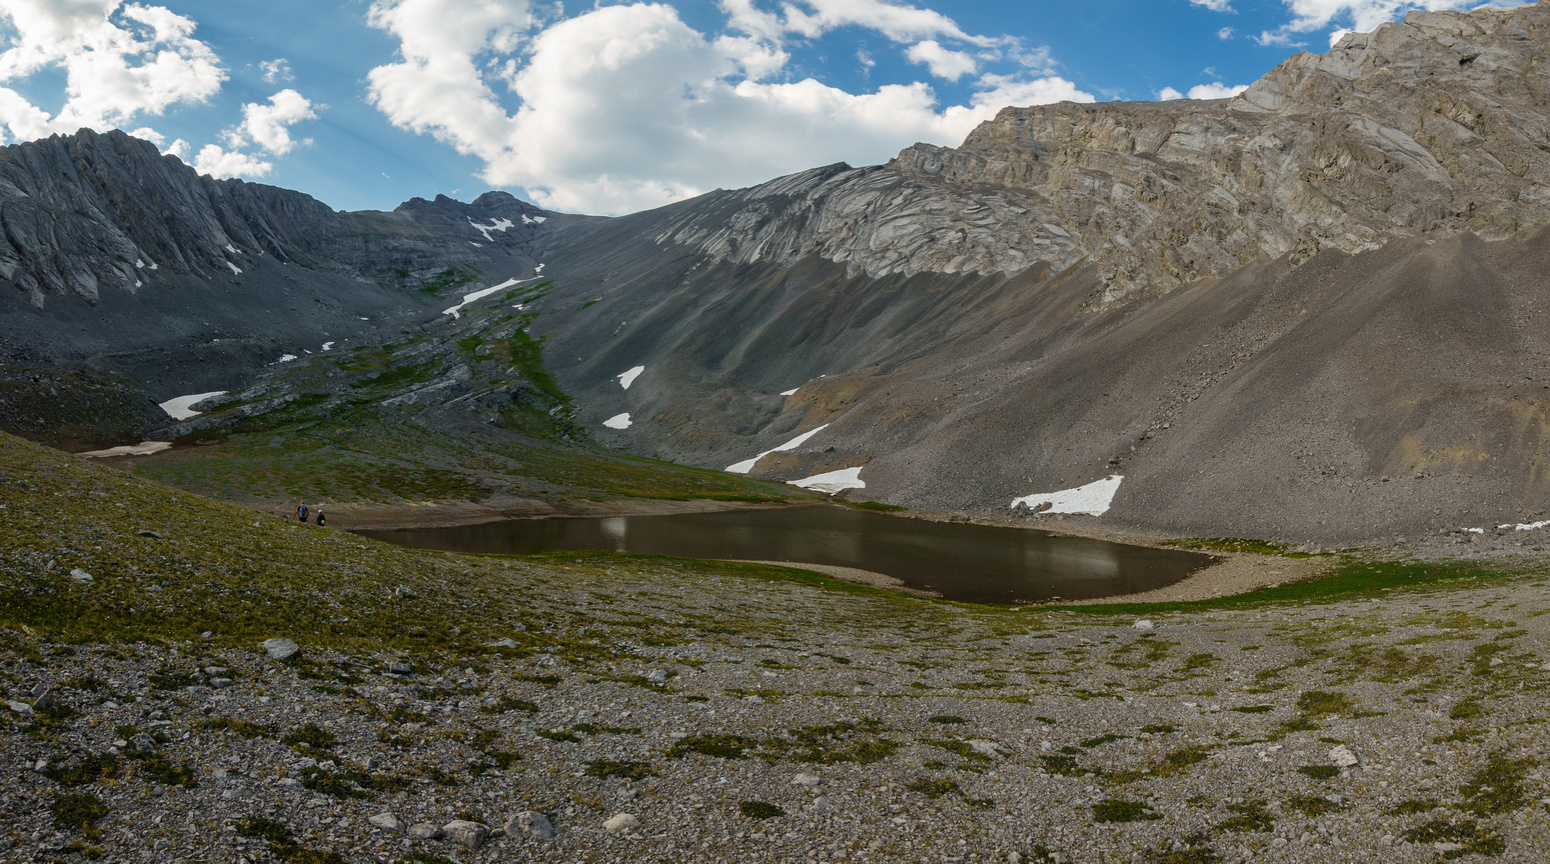 Hiking alpine meadows to the upper Turbulent Lake.